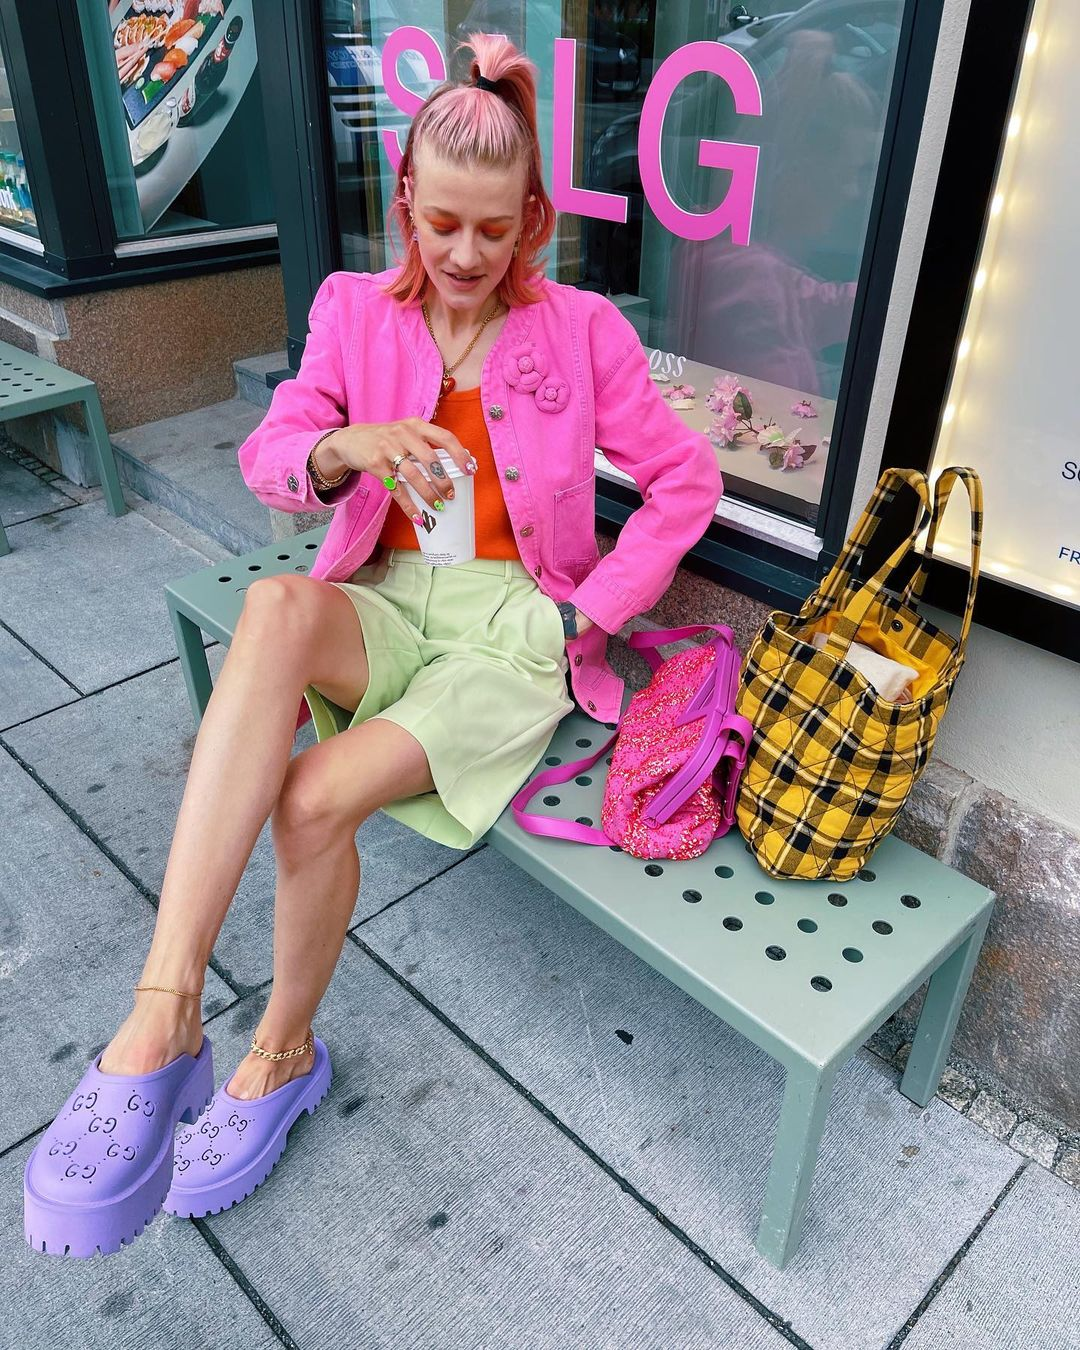 marianne-theodorsen-gucci-platform-perforated-g-sandal-lilac-rubber